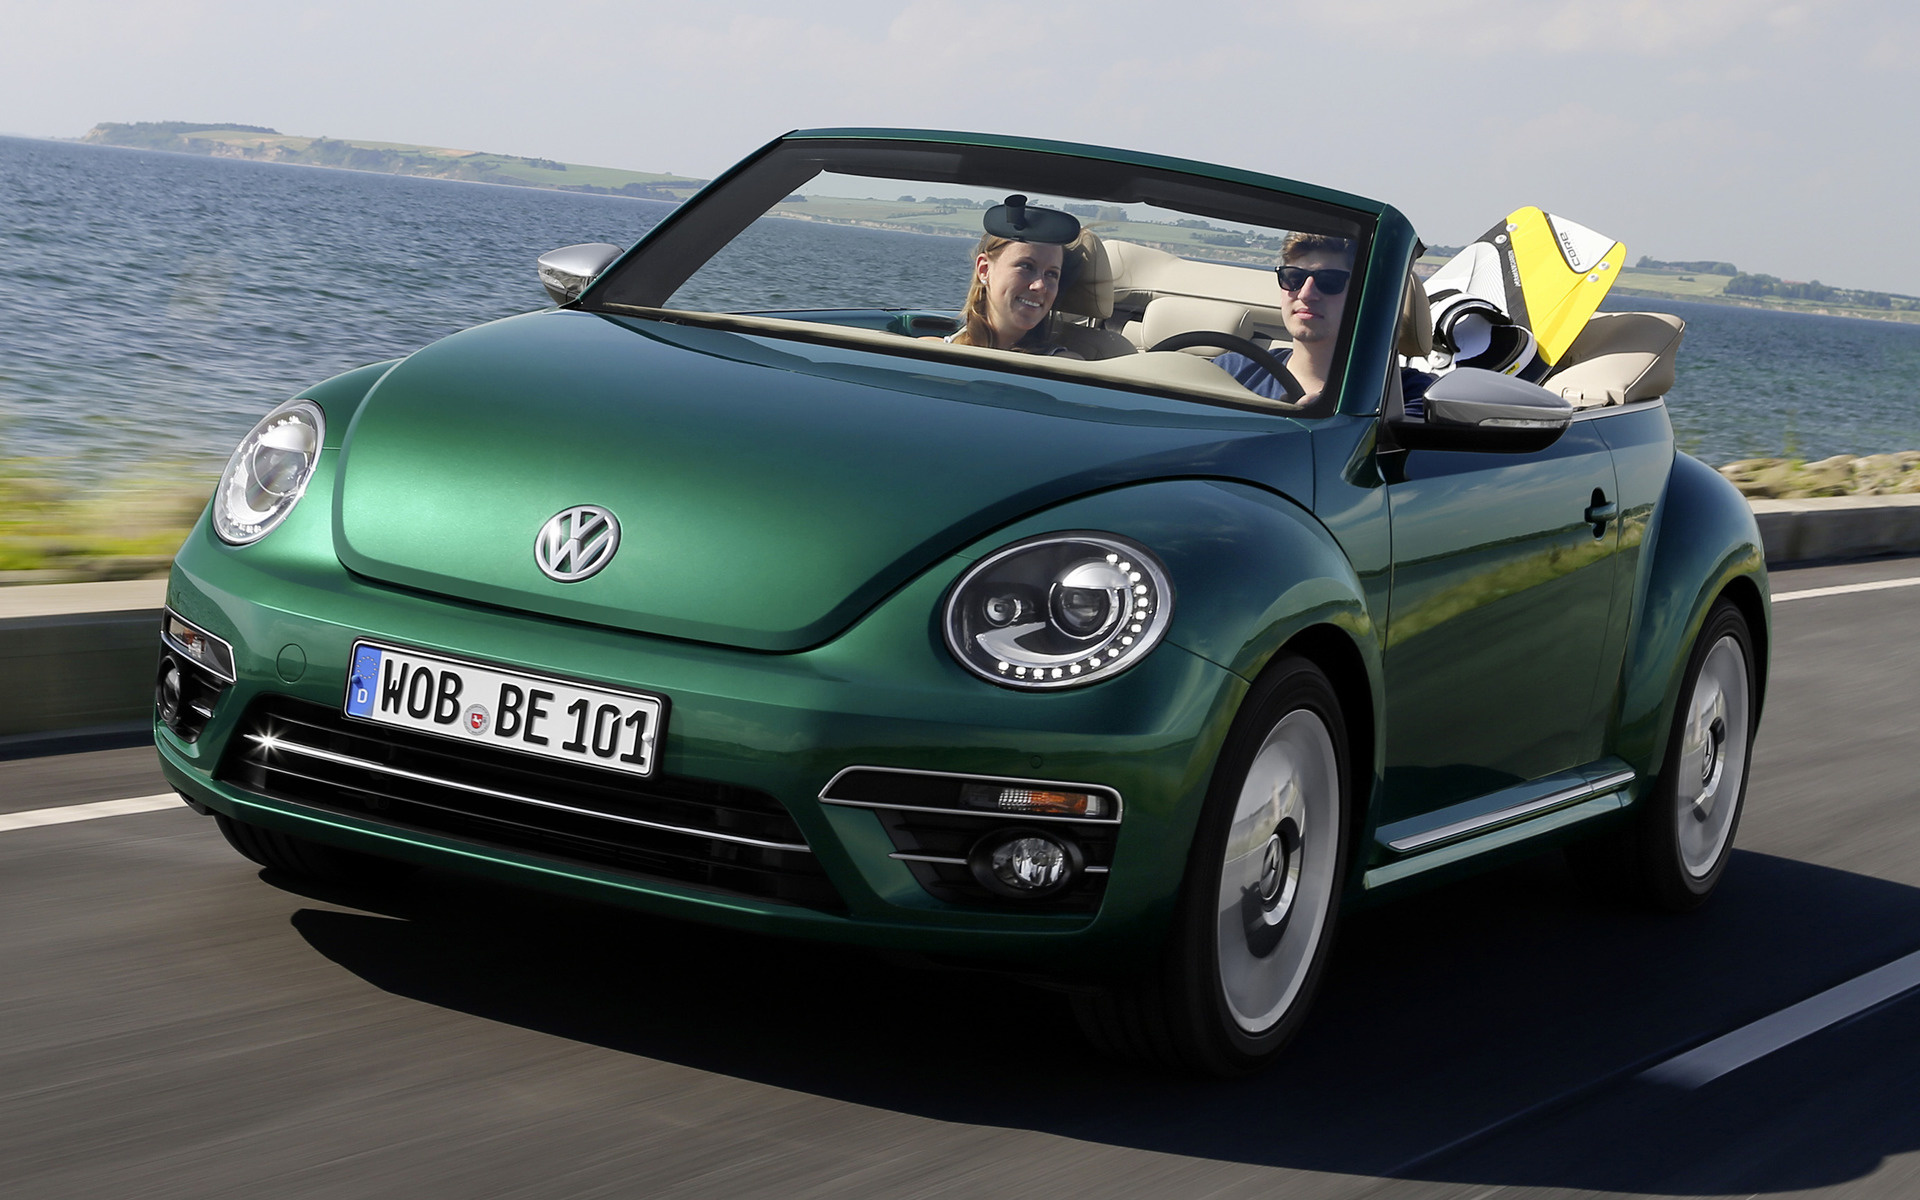 https://www.carpixel.net/w/8aa2438f3e5d6aa4a8f97fdfb6924bb3/volkswagen-beetle-cabriolet-car-wallpaper-56826.jpg